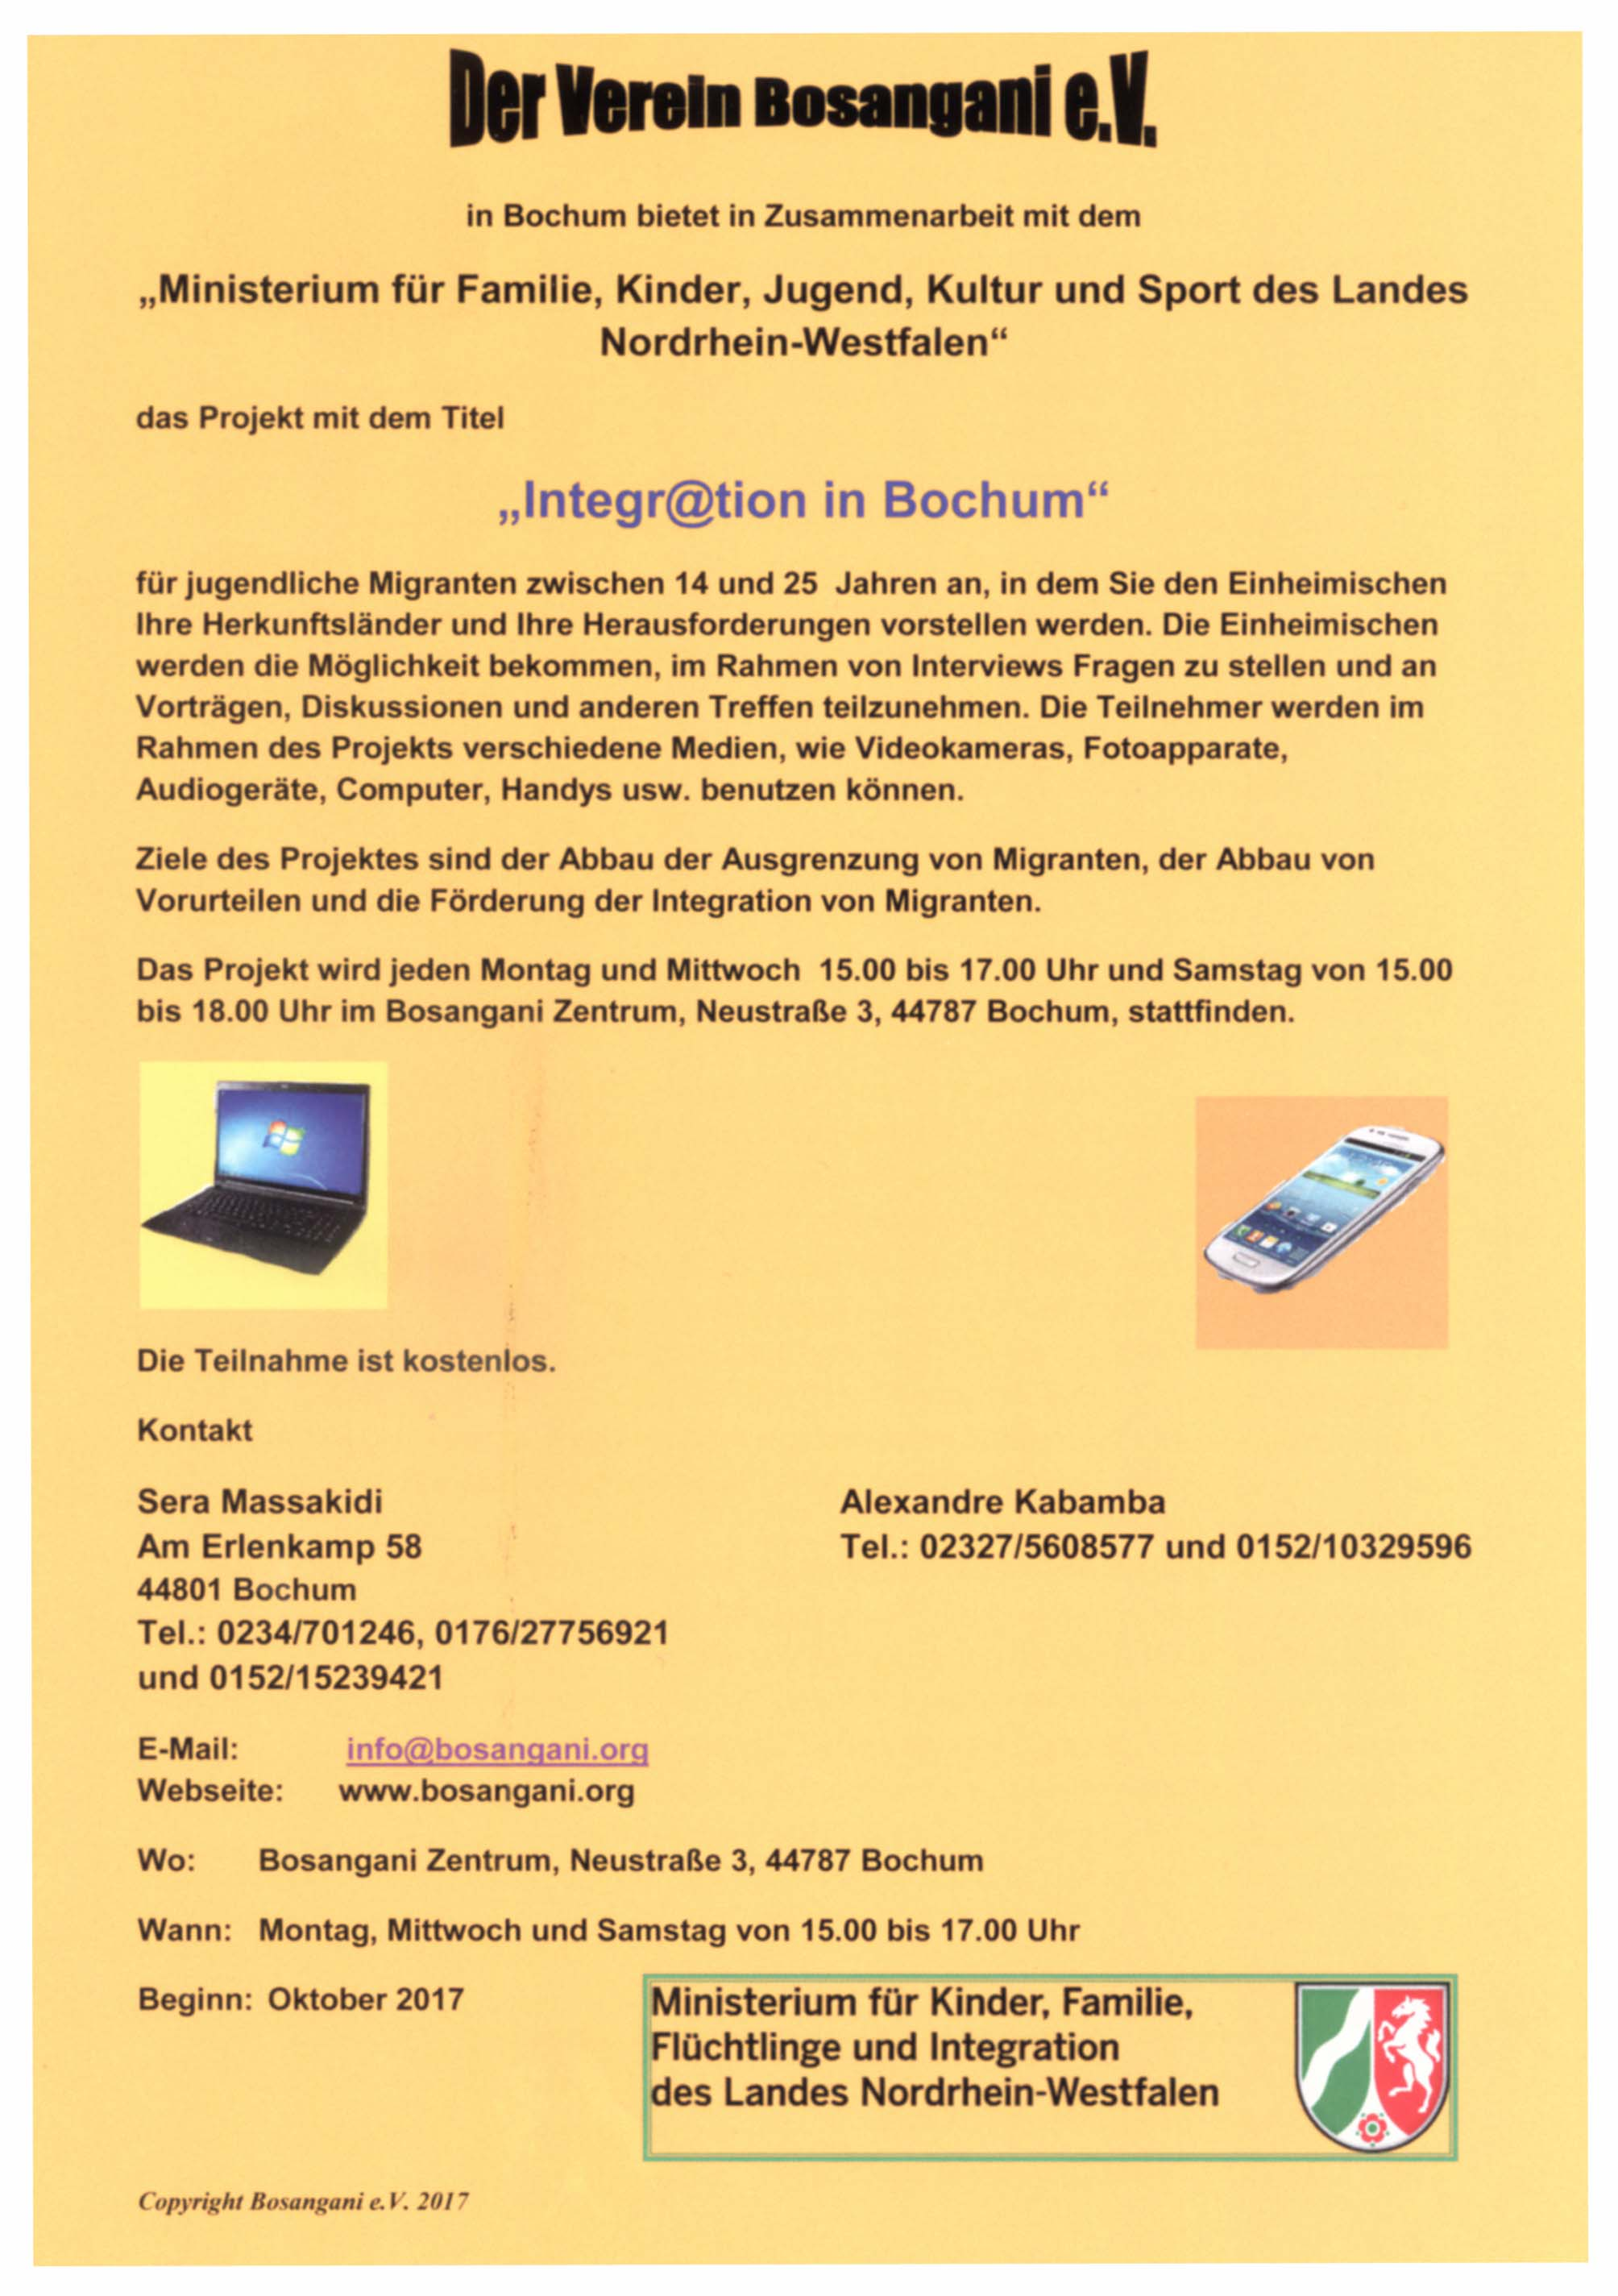 Integration in Bochum